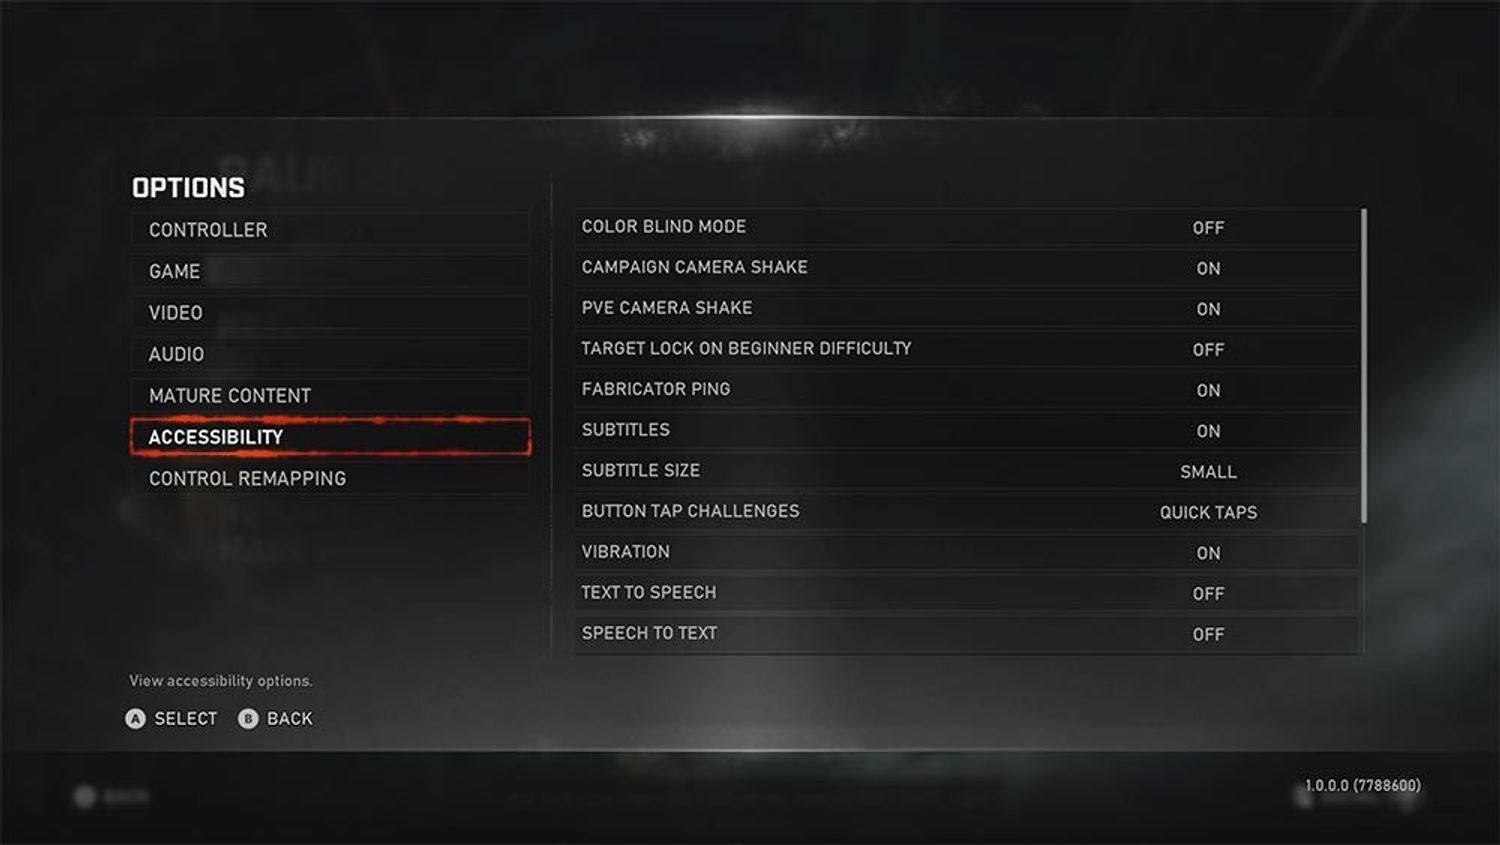 Accessibility options in Gears of War 5